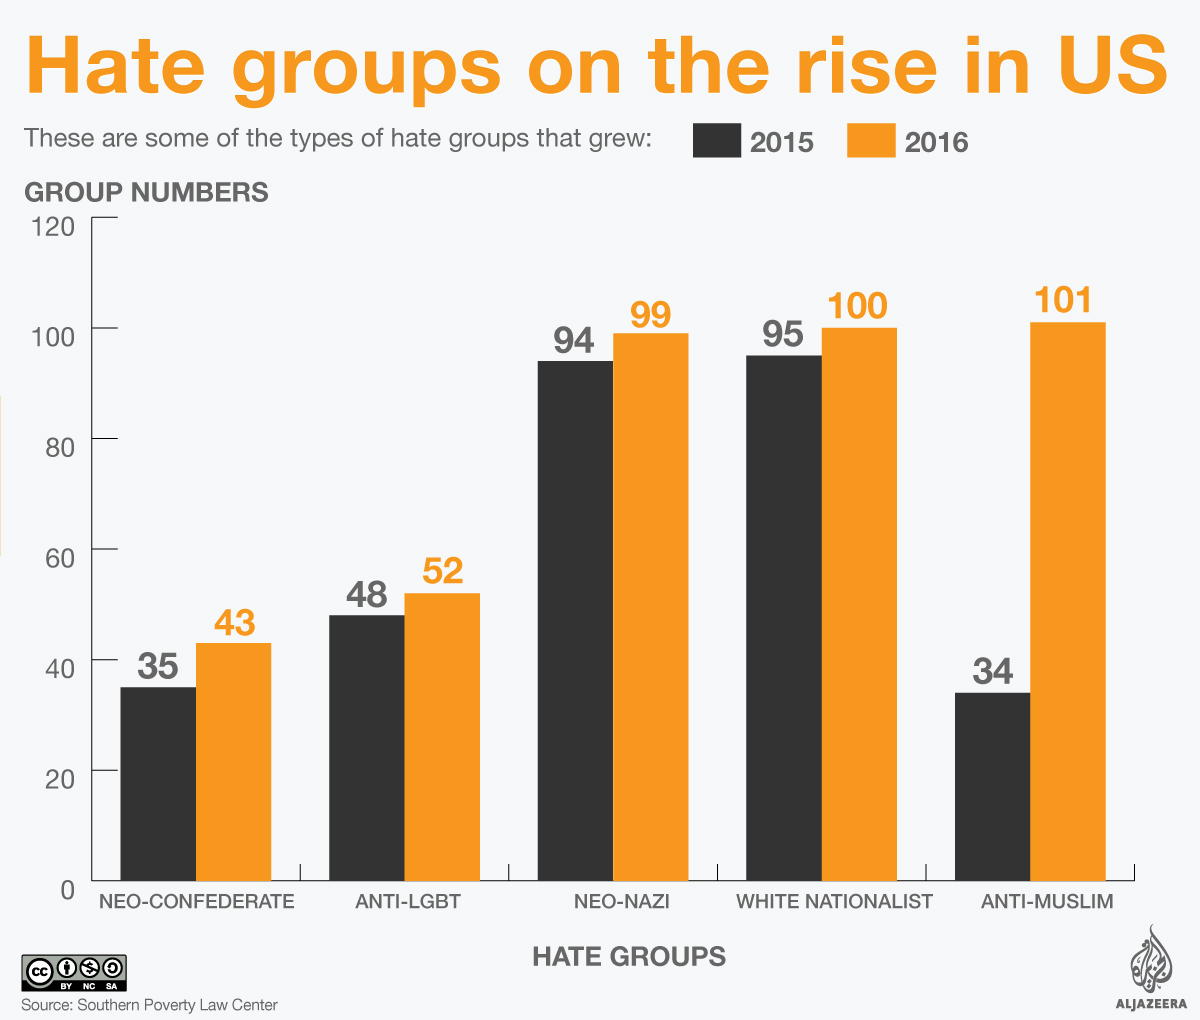 Mapping hate: The rise of hate groups in the US | USA | Al Jazeera